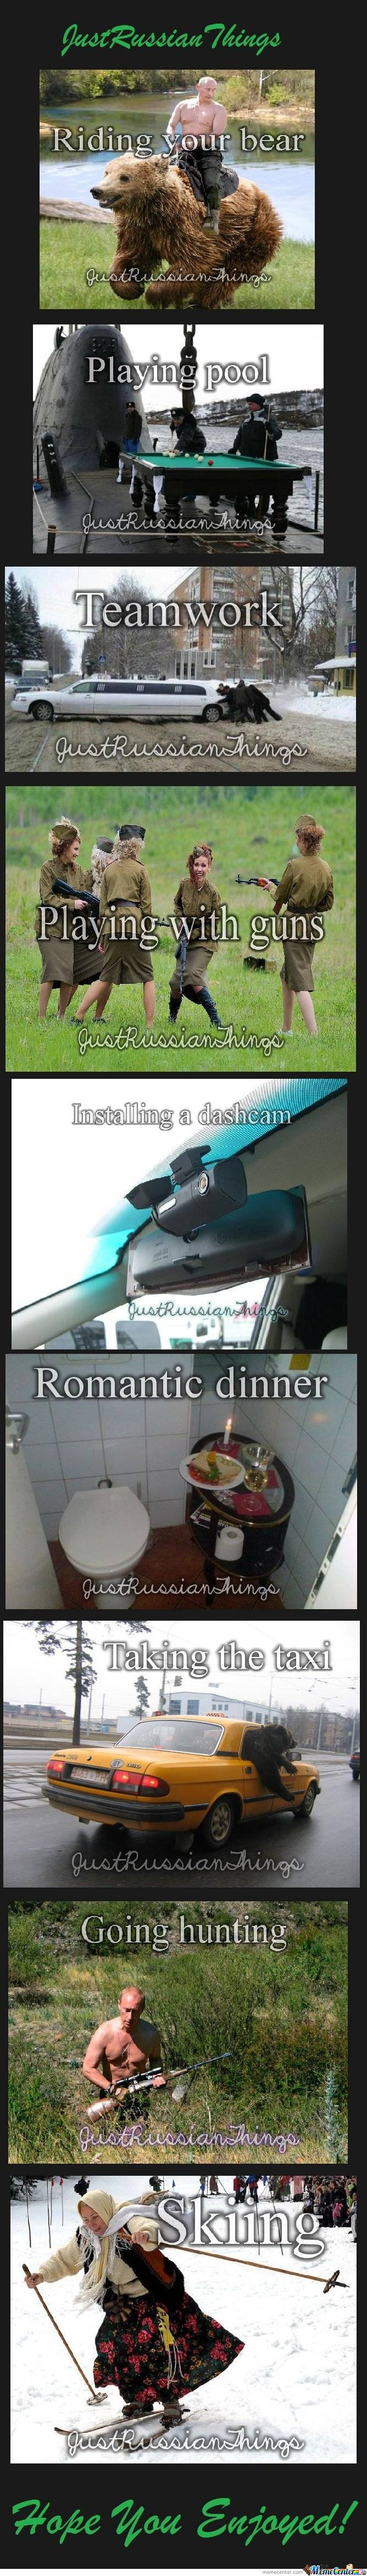 Just Russian Things